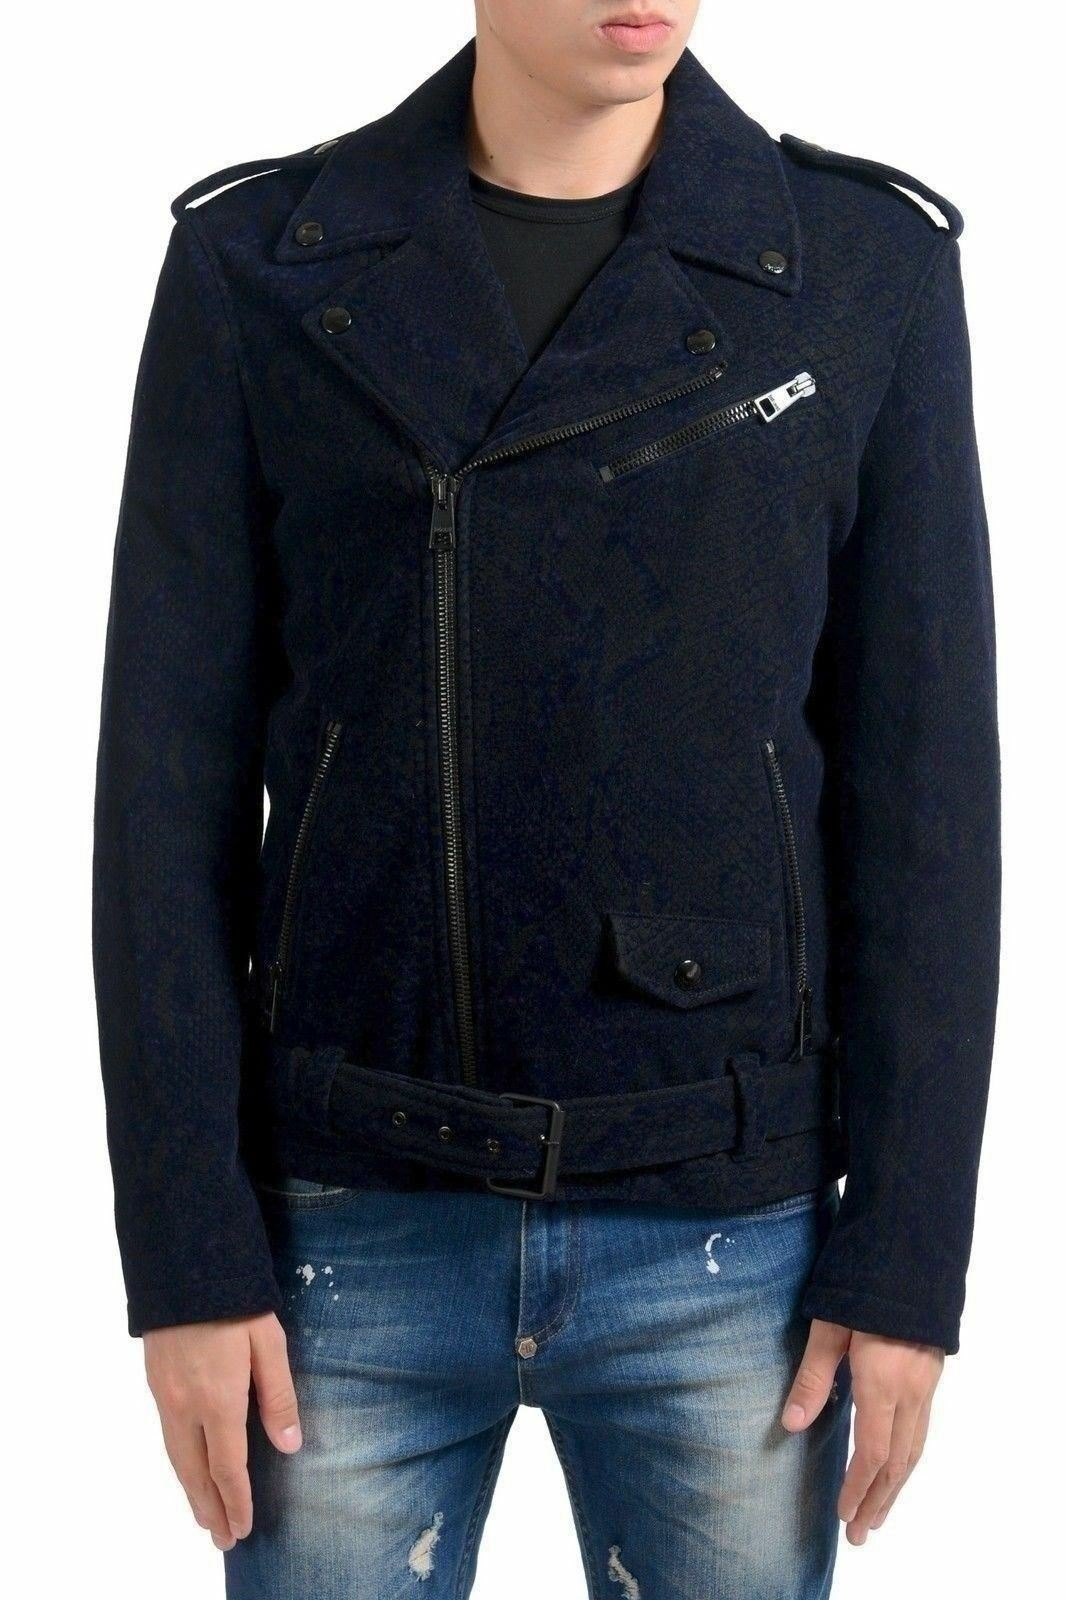 7b268988edf8b Just Cavalli Men's Wool Double Breasted Belted Jacket US S IT 48 ...